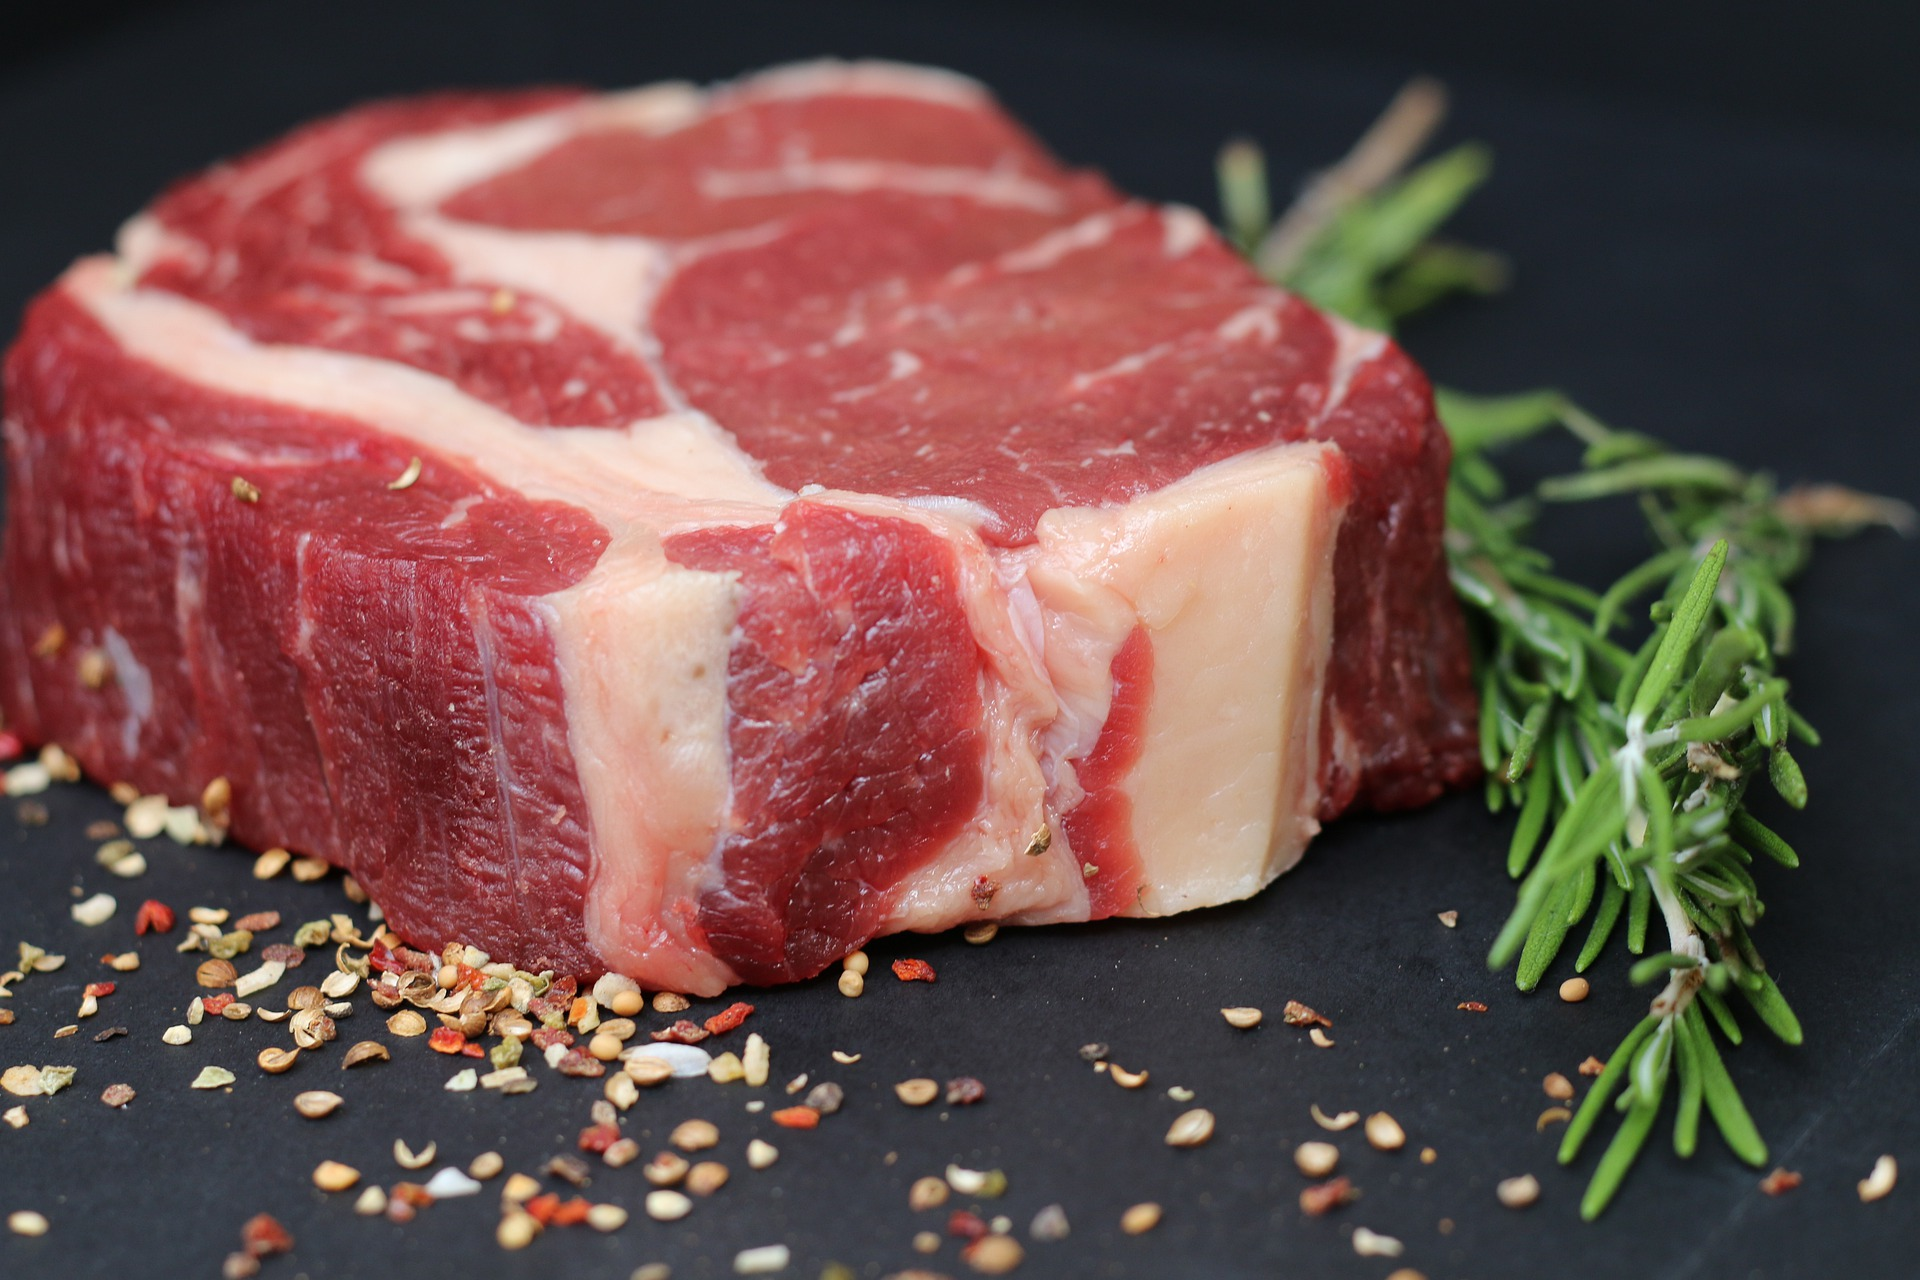 Thursday Tips: Is red meat and processed meat really harmful?